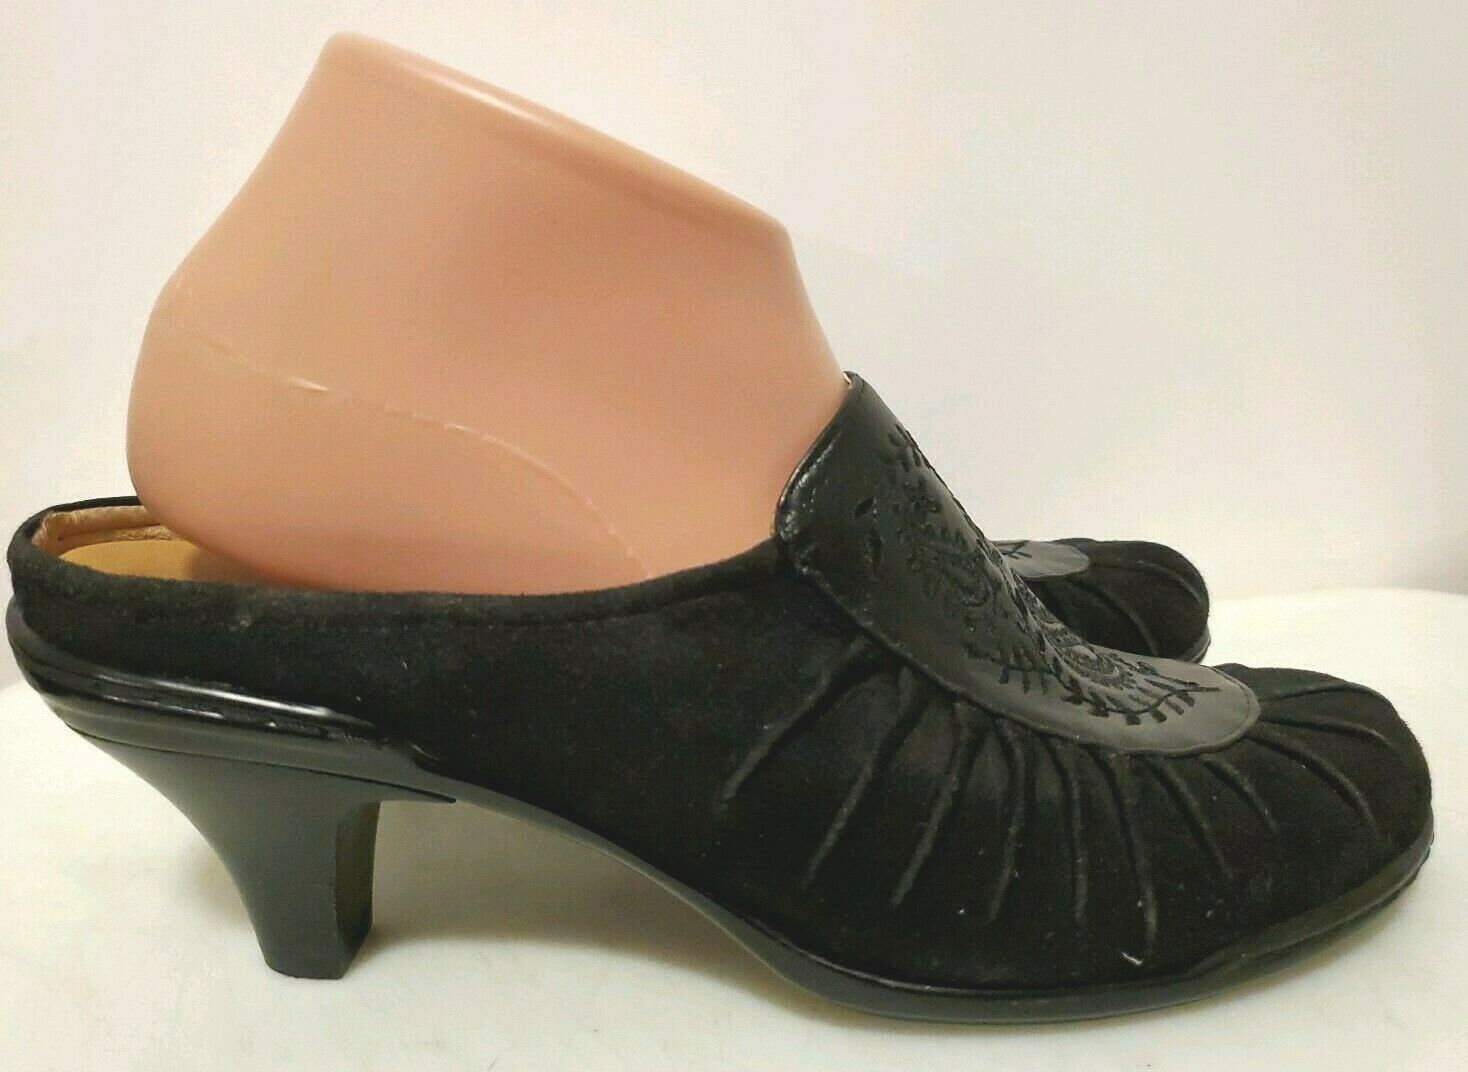 Sofft Black Embellished Leather Suede Mules Slip On Heels For Women Size 8.5 M - $18.50